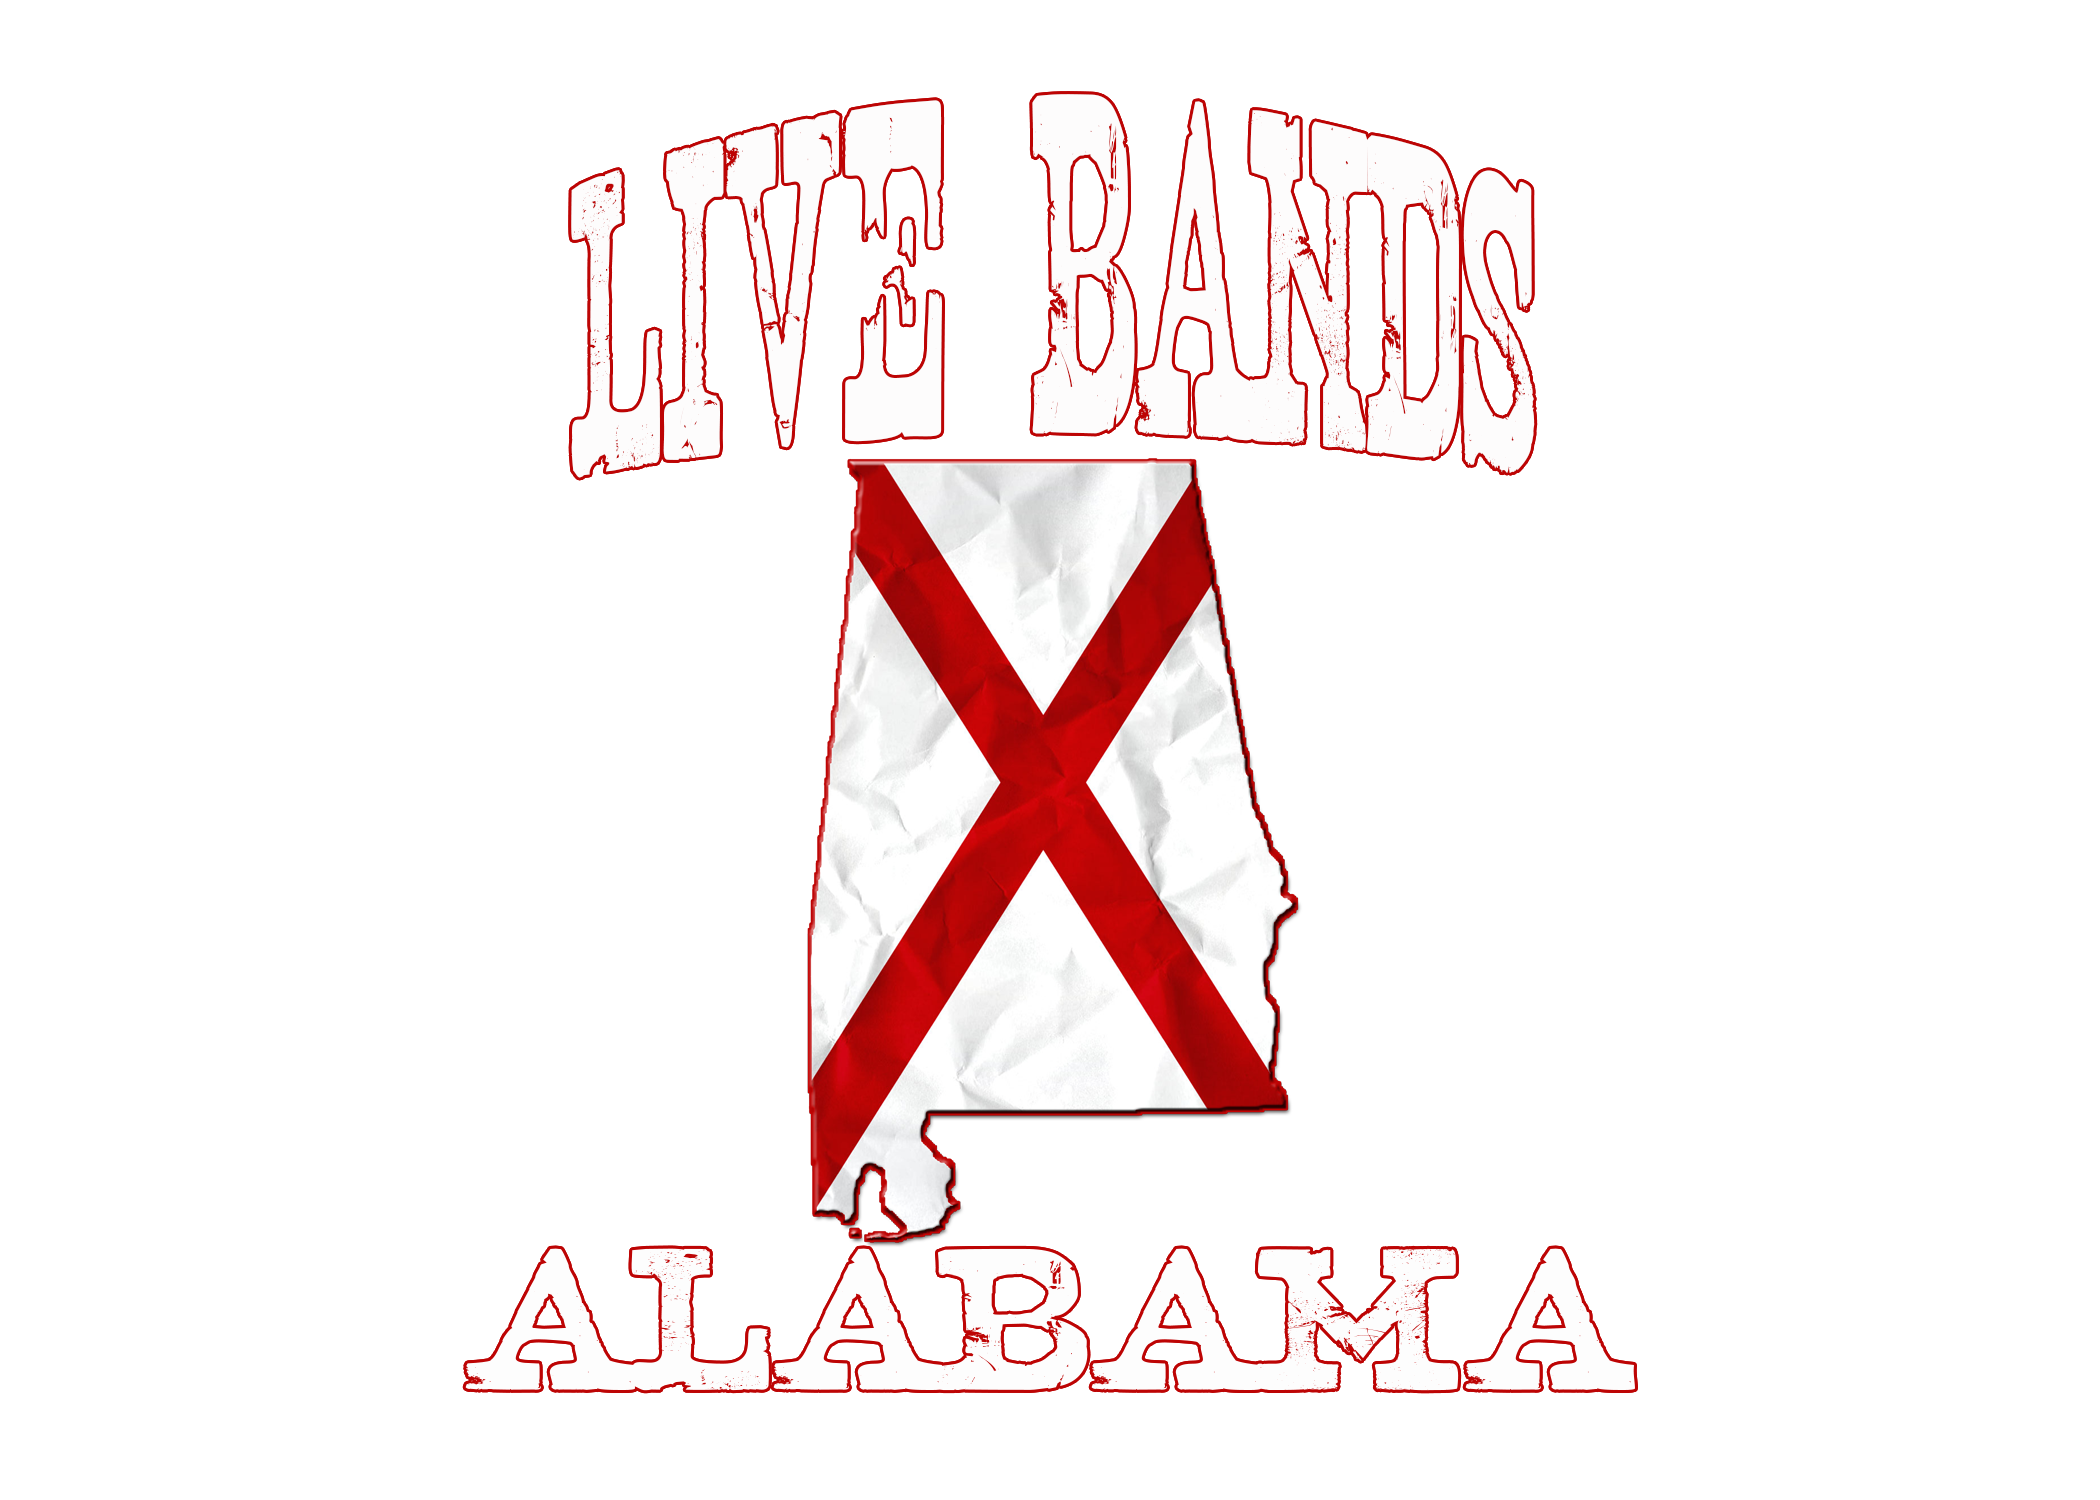 Live Bands Alabama